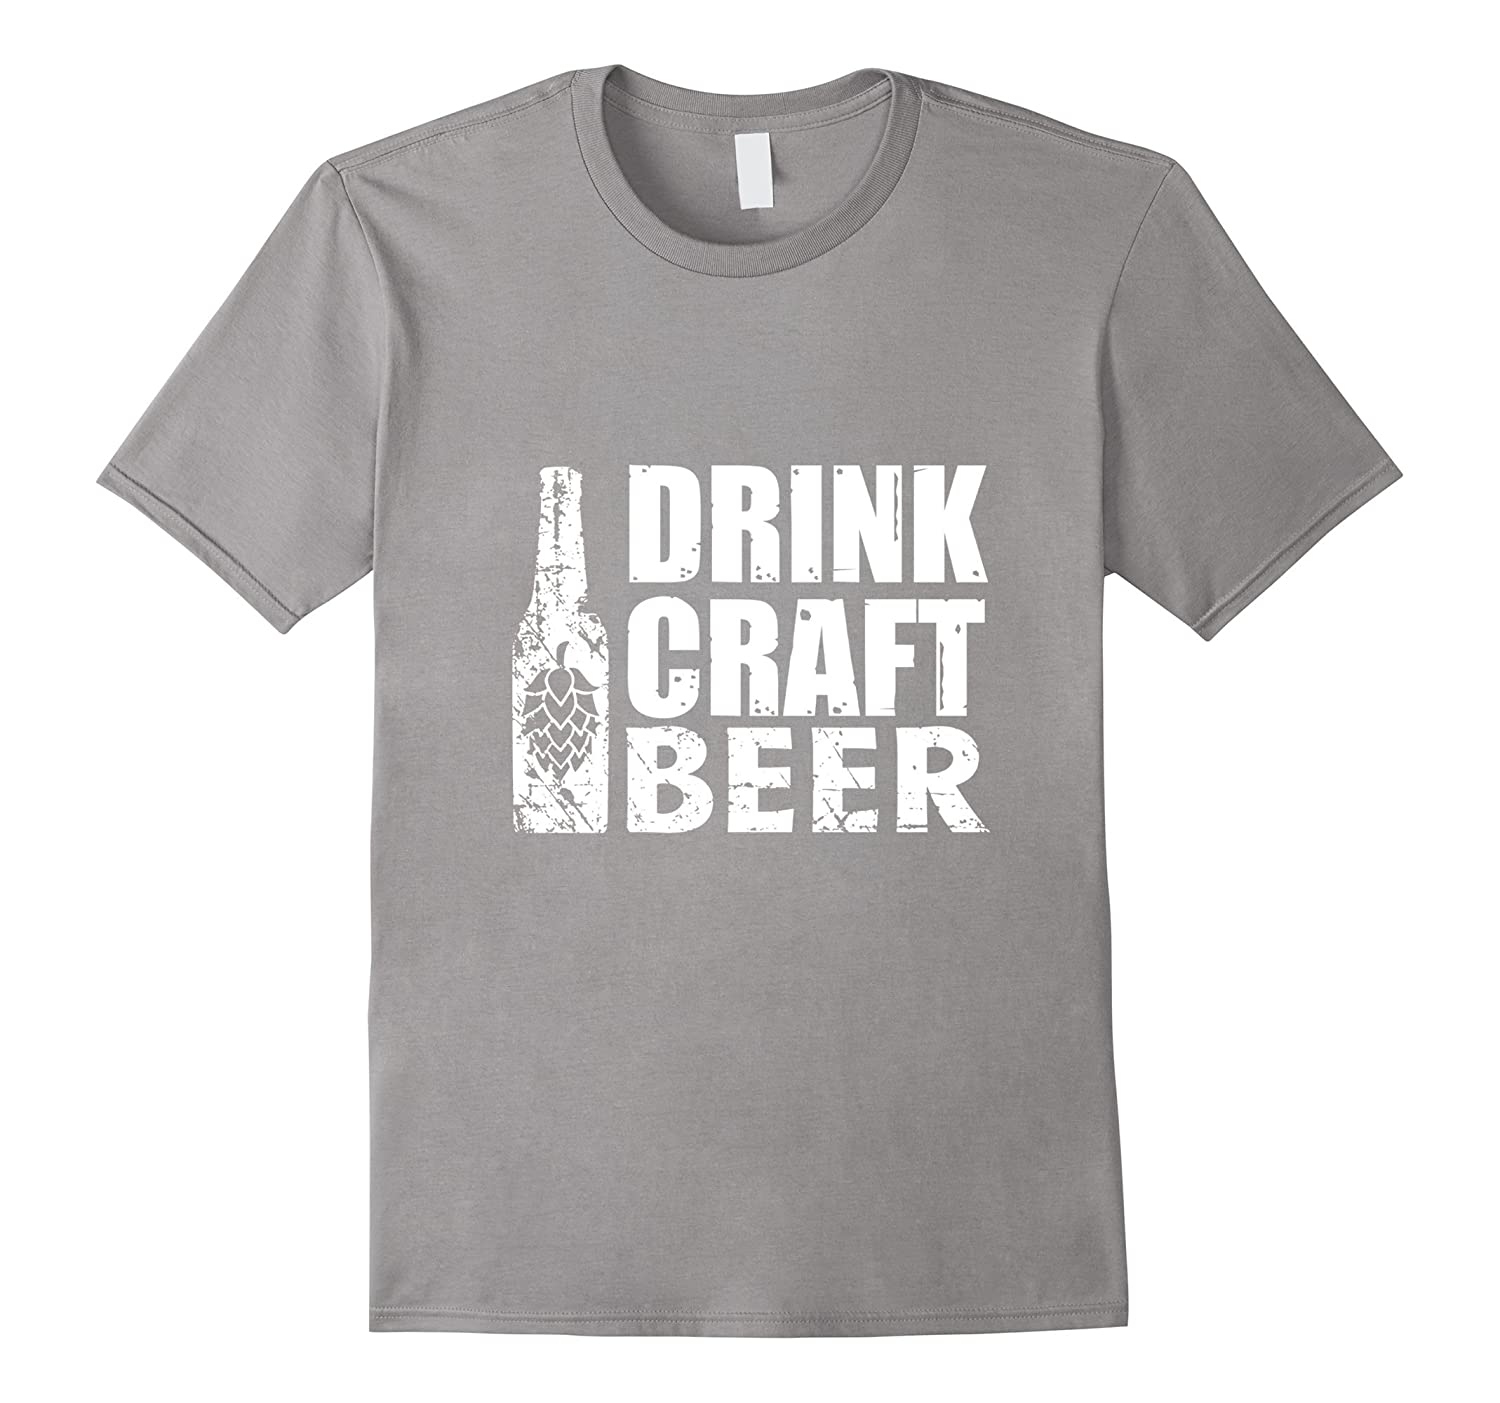 Drink craft beer shirt funny hops home brewing gift art for Funny craft beer shirts